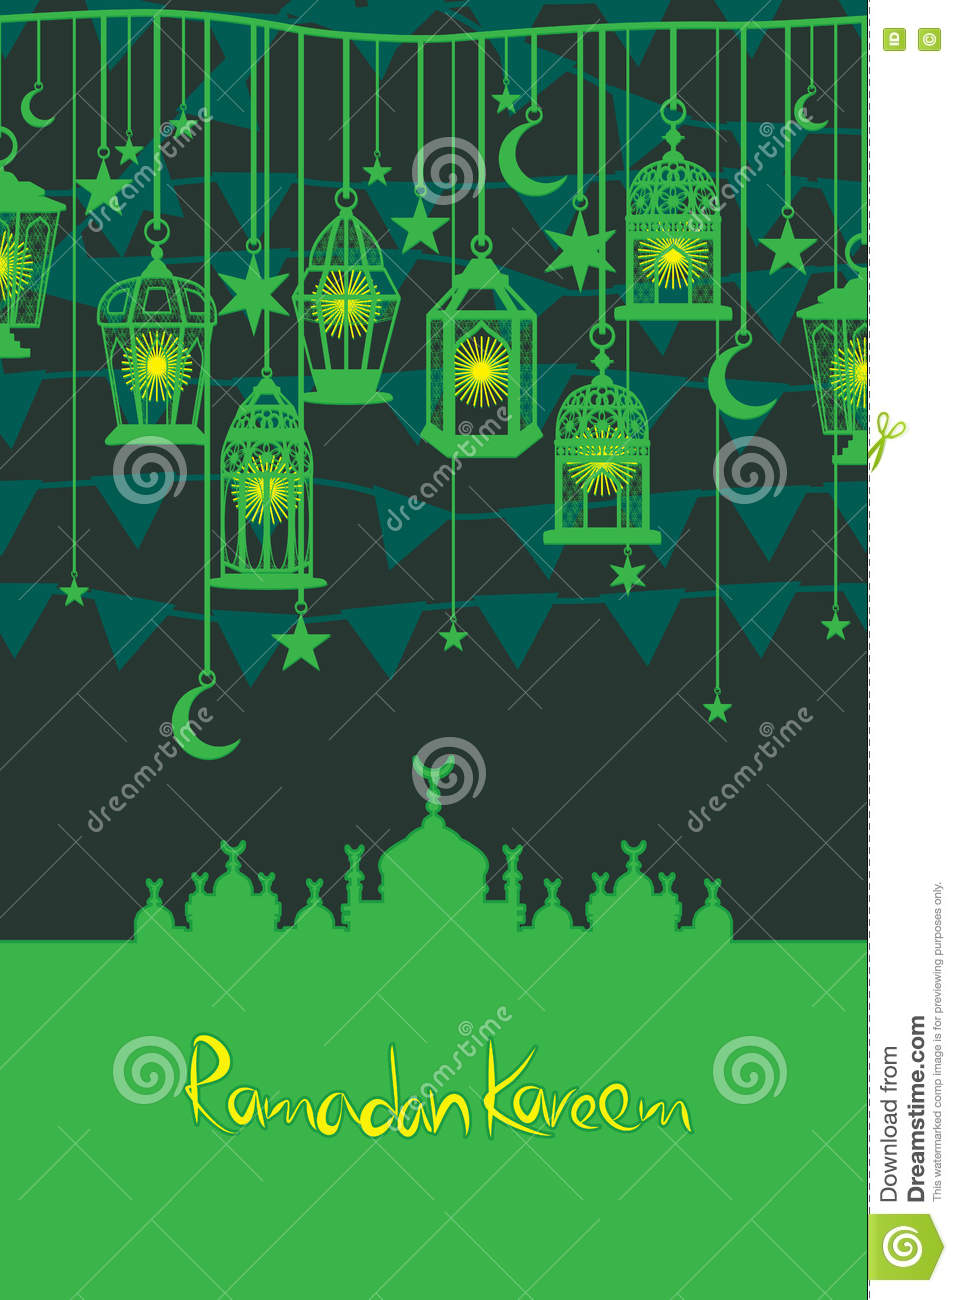 Ramadan lantern flag hang vertical card